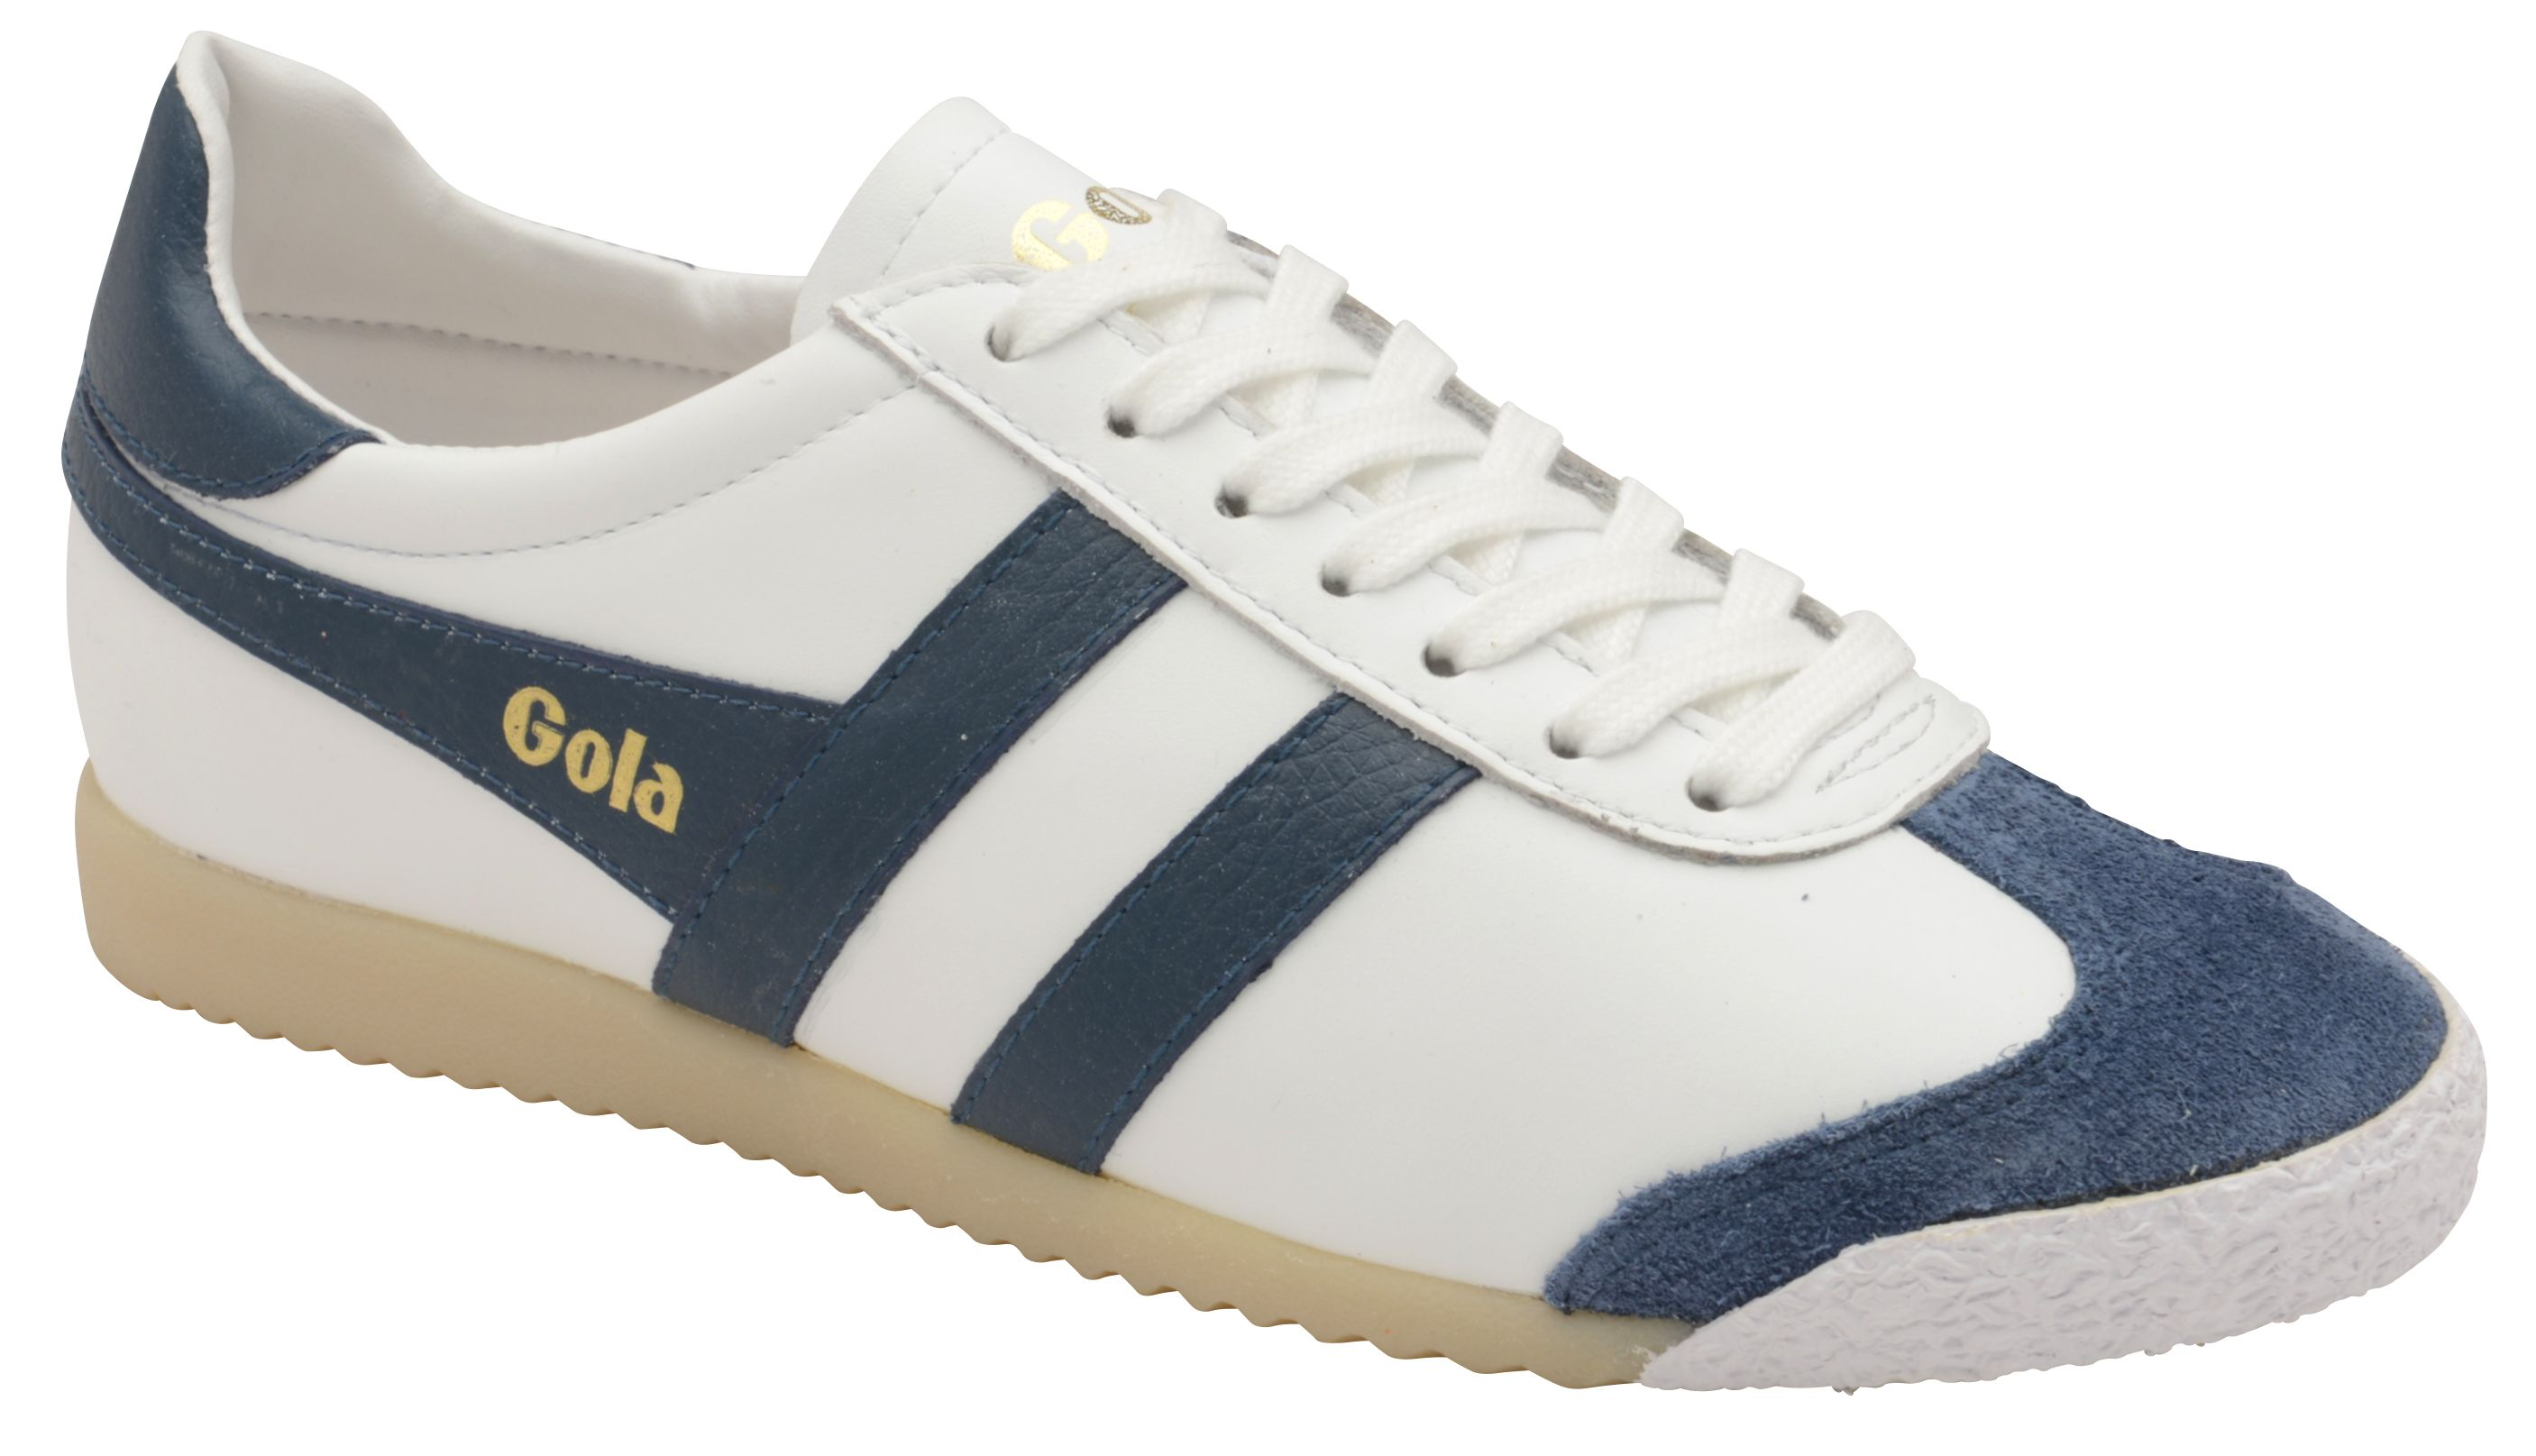 Gola Harrier 50 Leather Lace Up Trainers, White